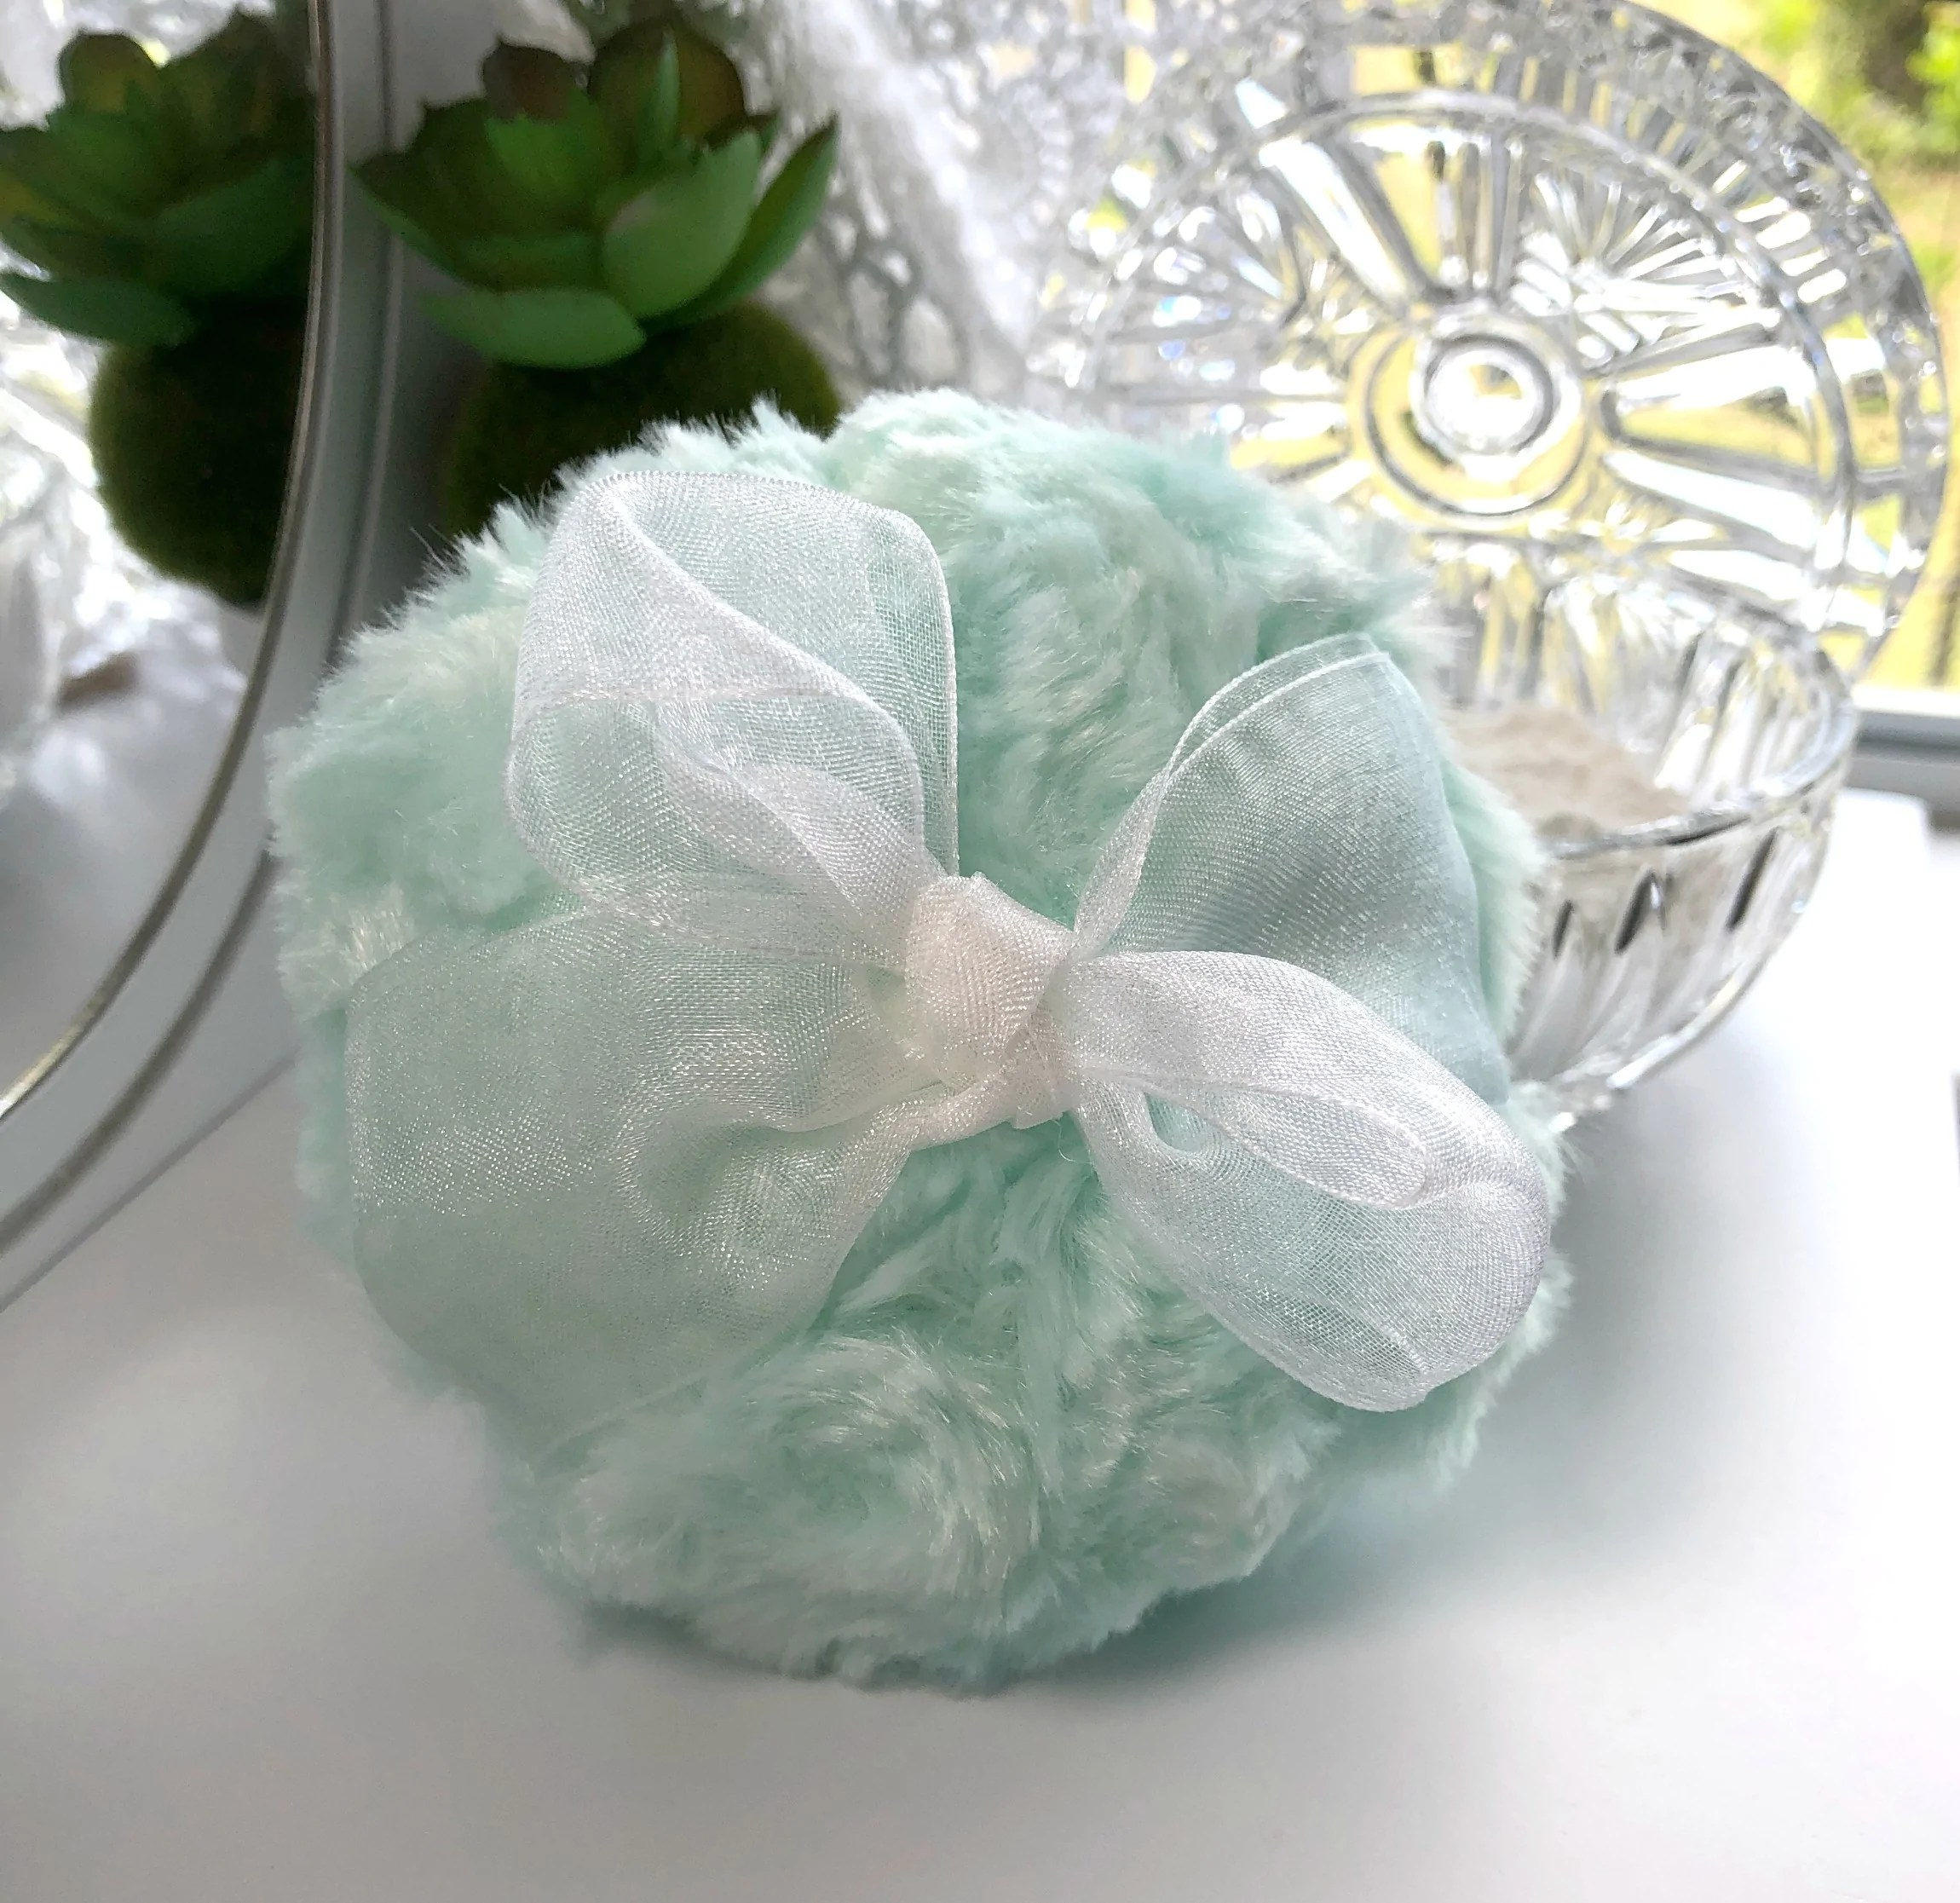 Pouf Mint Powder Puff 4 Inch Mint Green Plush And White Organza Pouf To Apply Body Powder